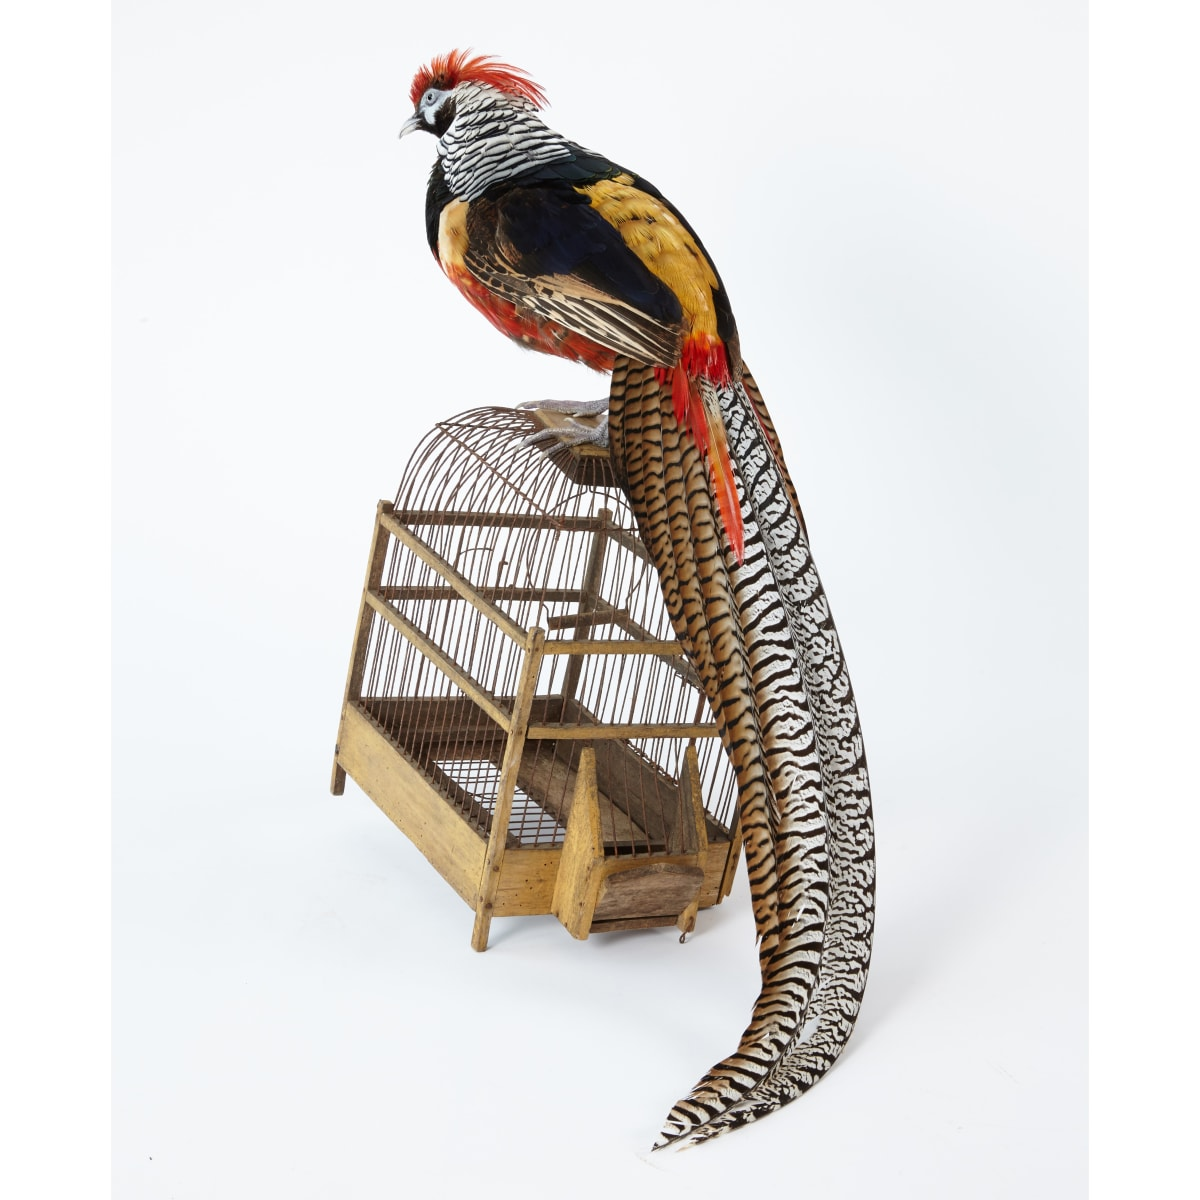 Fiona Dean His Finest Hour, 2019 Lady Amherst cock pheasant with antique bird cage in ebonised oak cabinet 90 x 60 x 79 cm